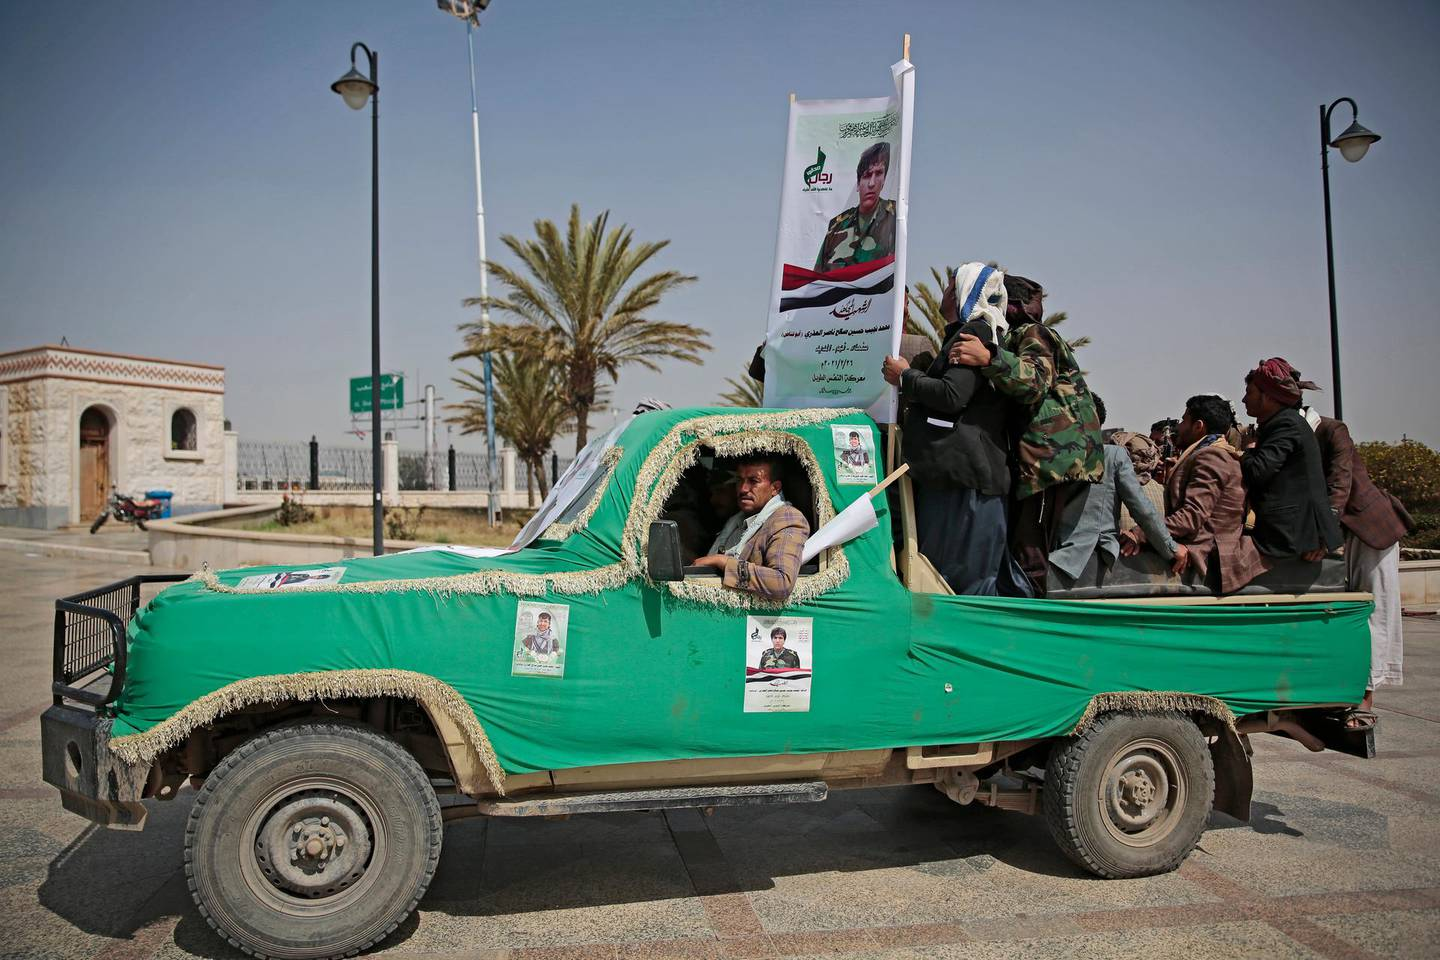 Armed Houthi fighters ride on a vehicle as they attend the funeral procession of Houthi rebel fighters who were killed in recent fighting with forces of Yemen's internationally recognized government in Sanaa, Yemen, Tuesday, Mar. 2, 2021. (AP Photo/Hani Mohammed)